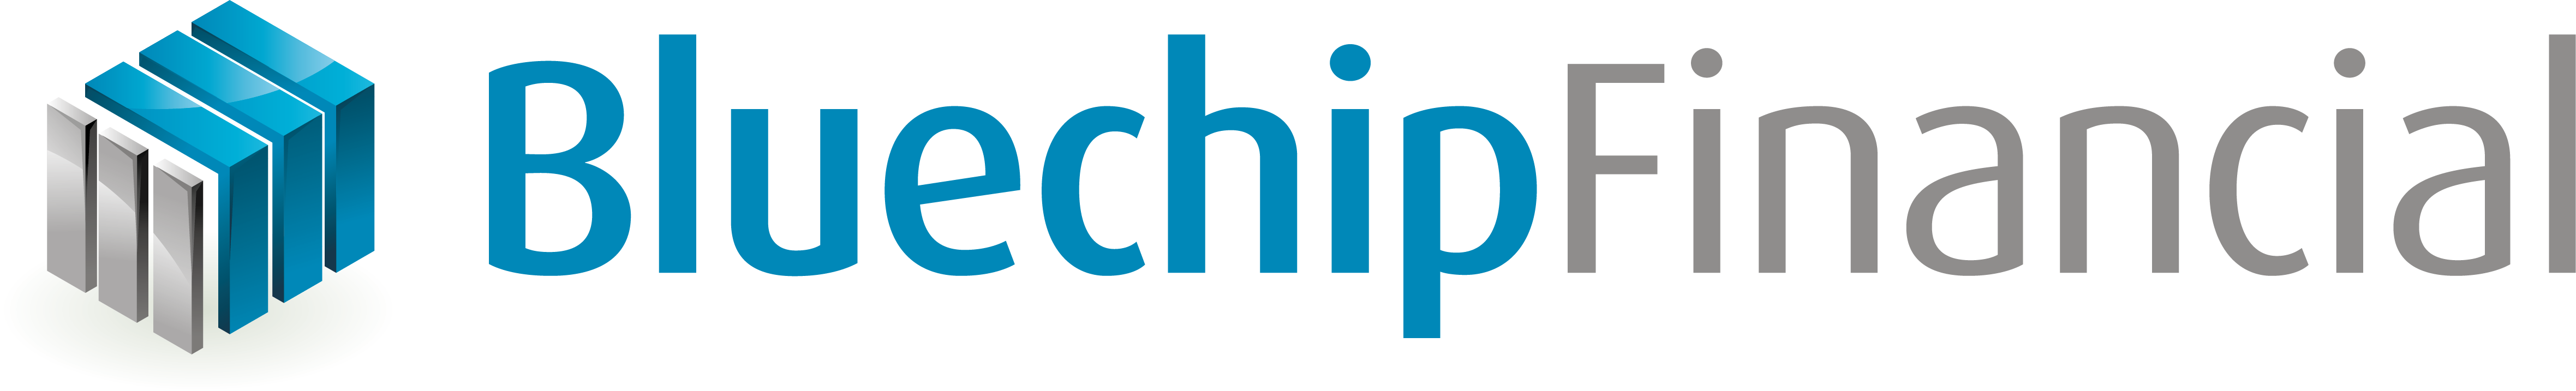 blue-chip-financial